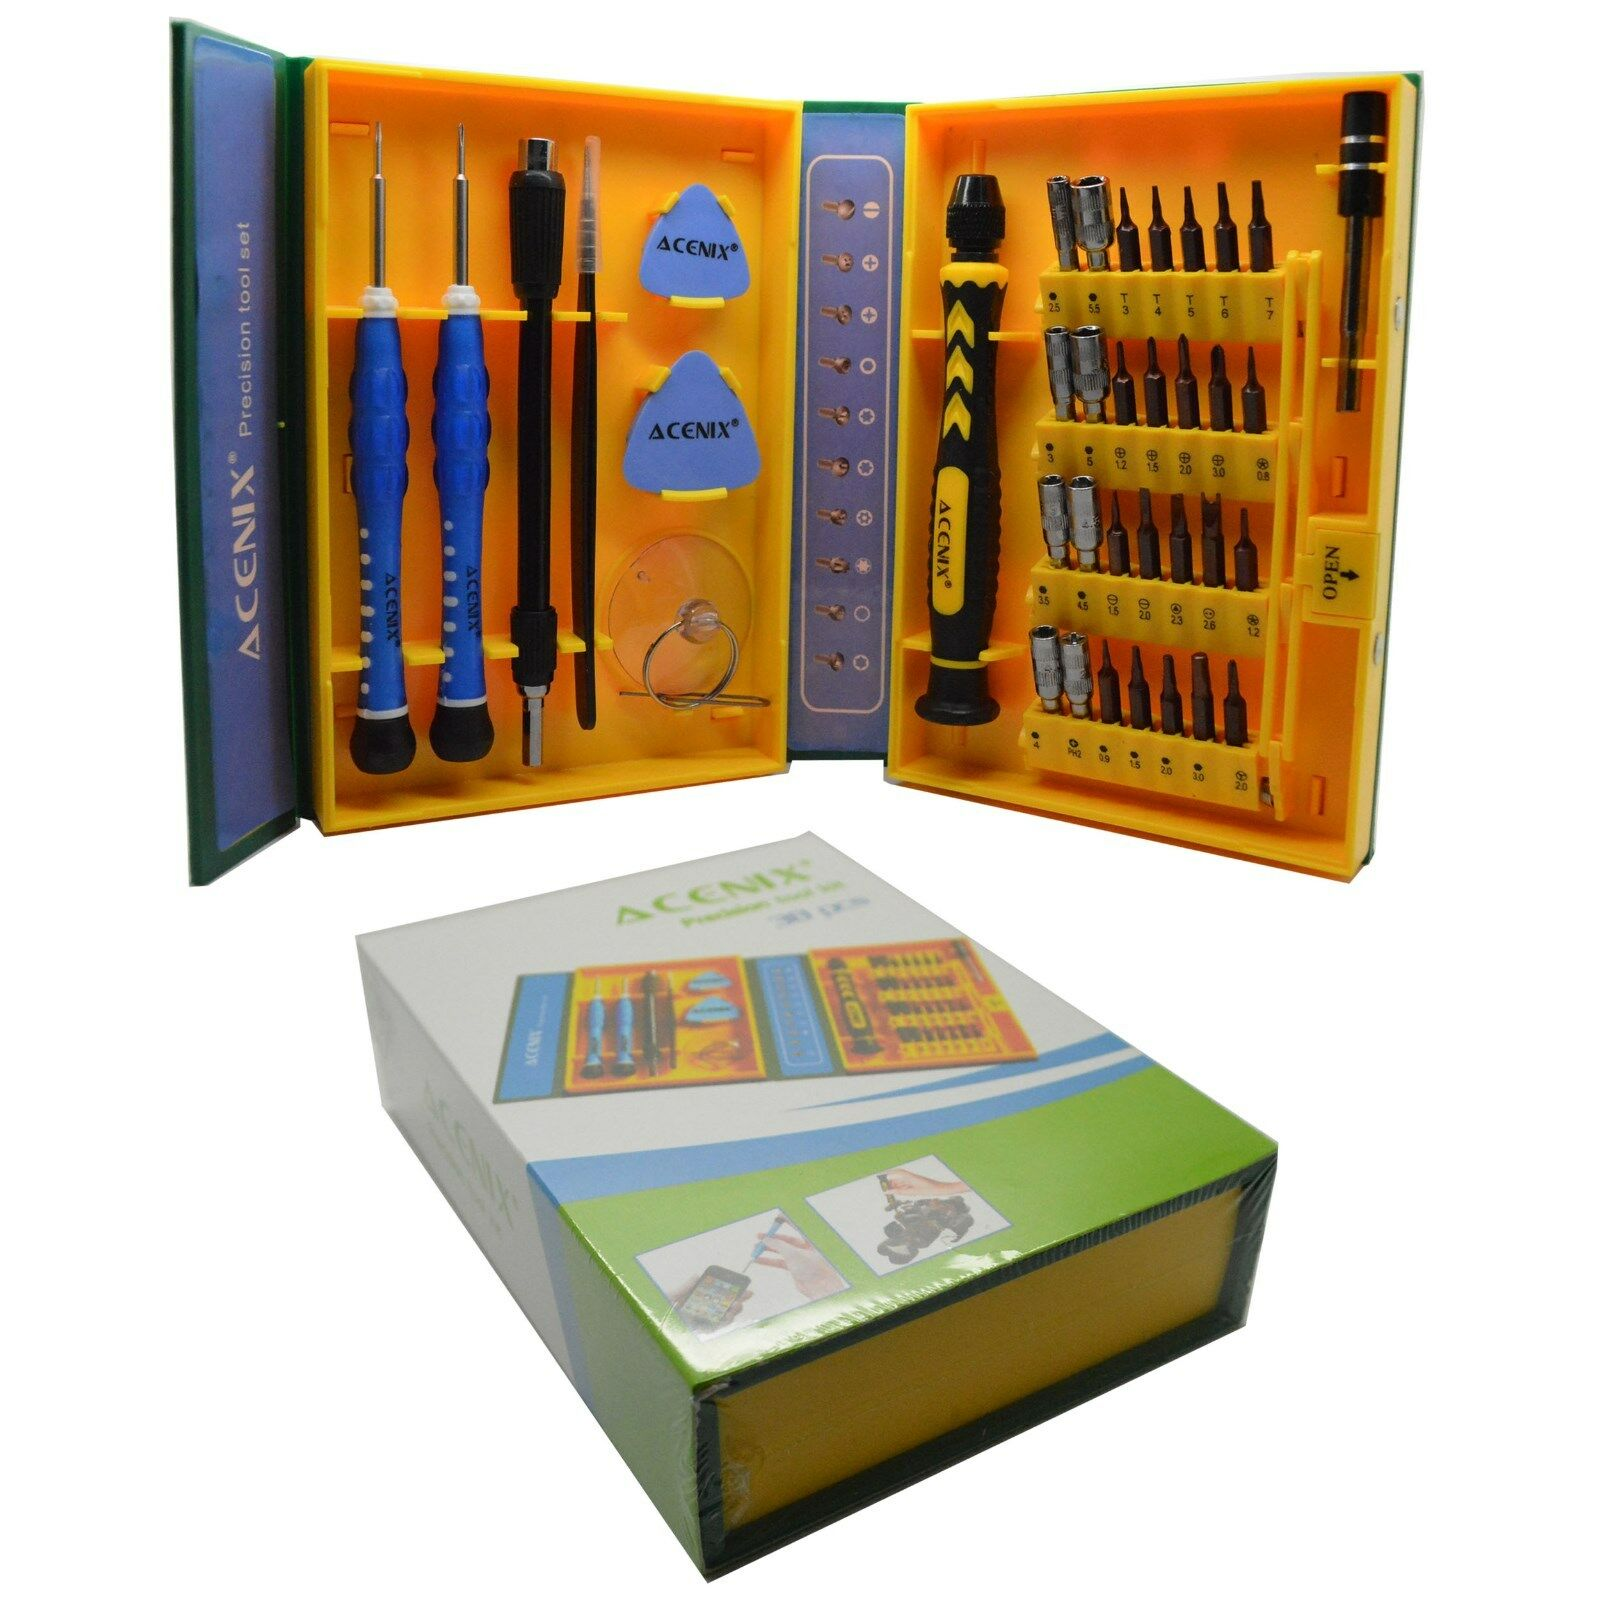 iPad//Samsung Galaxy S IV i9500 i9300 Other Mobile Phone Repair-Kits 8 in 1 Professional Versatile Screwdrivers Set for iPhone 5 iPhone 4 /&4S S III